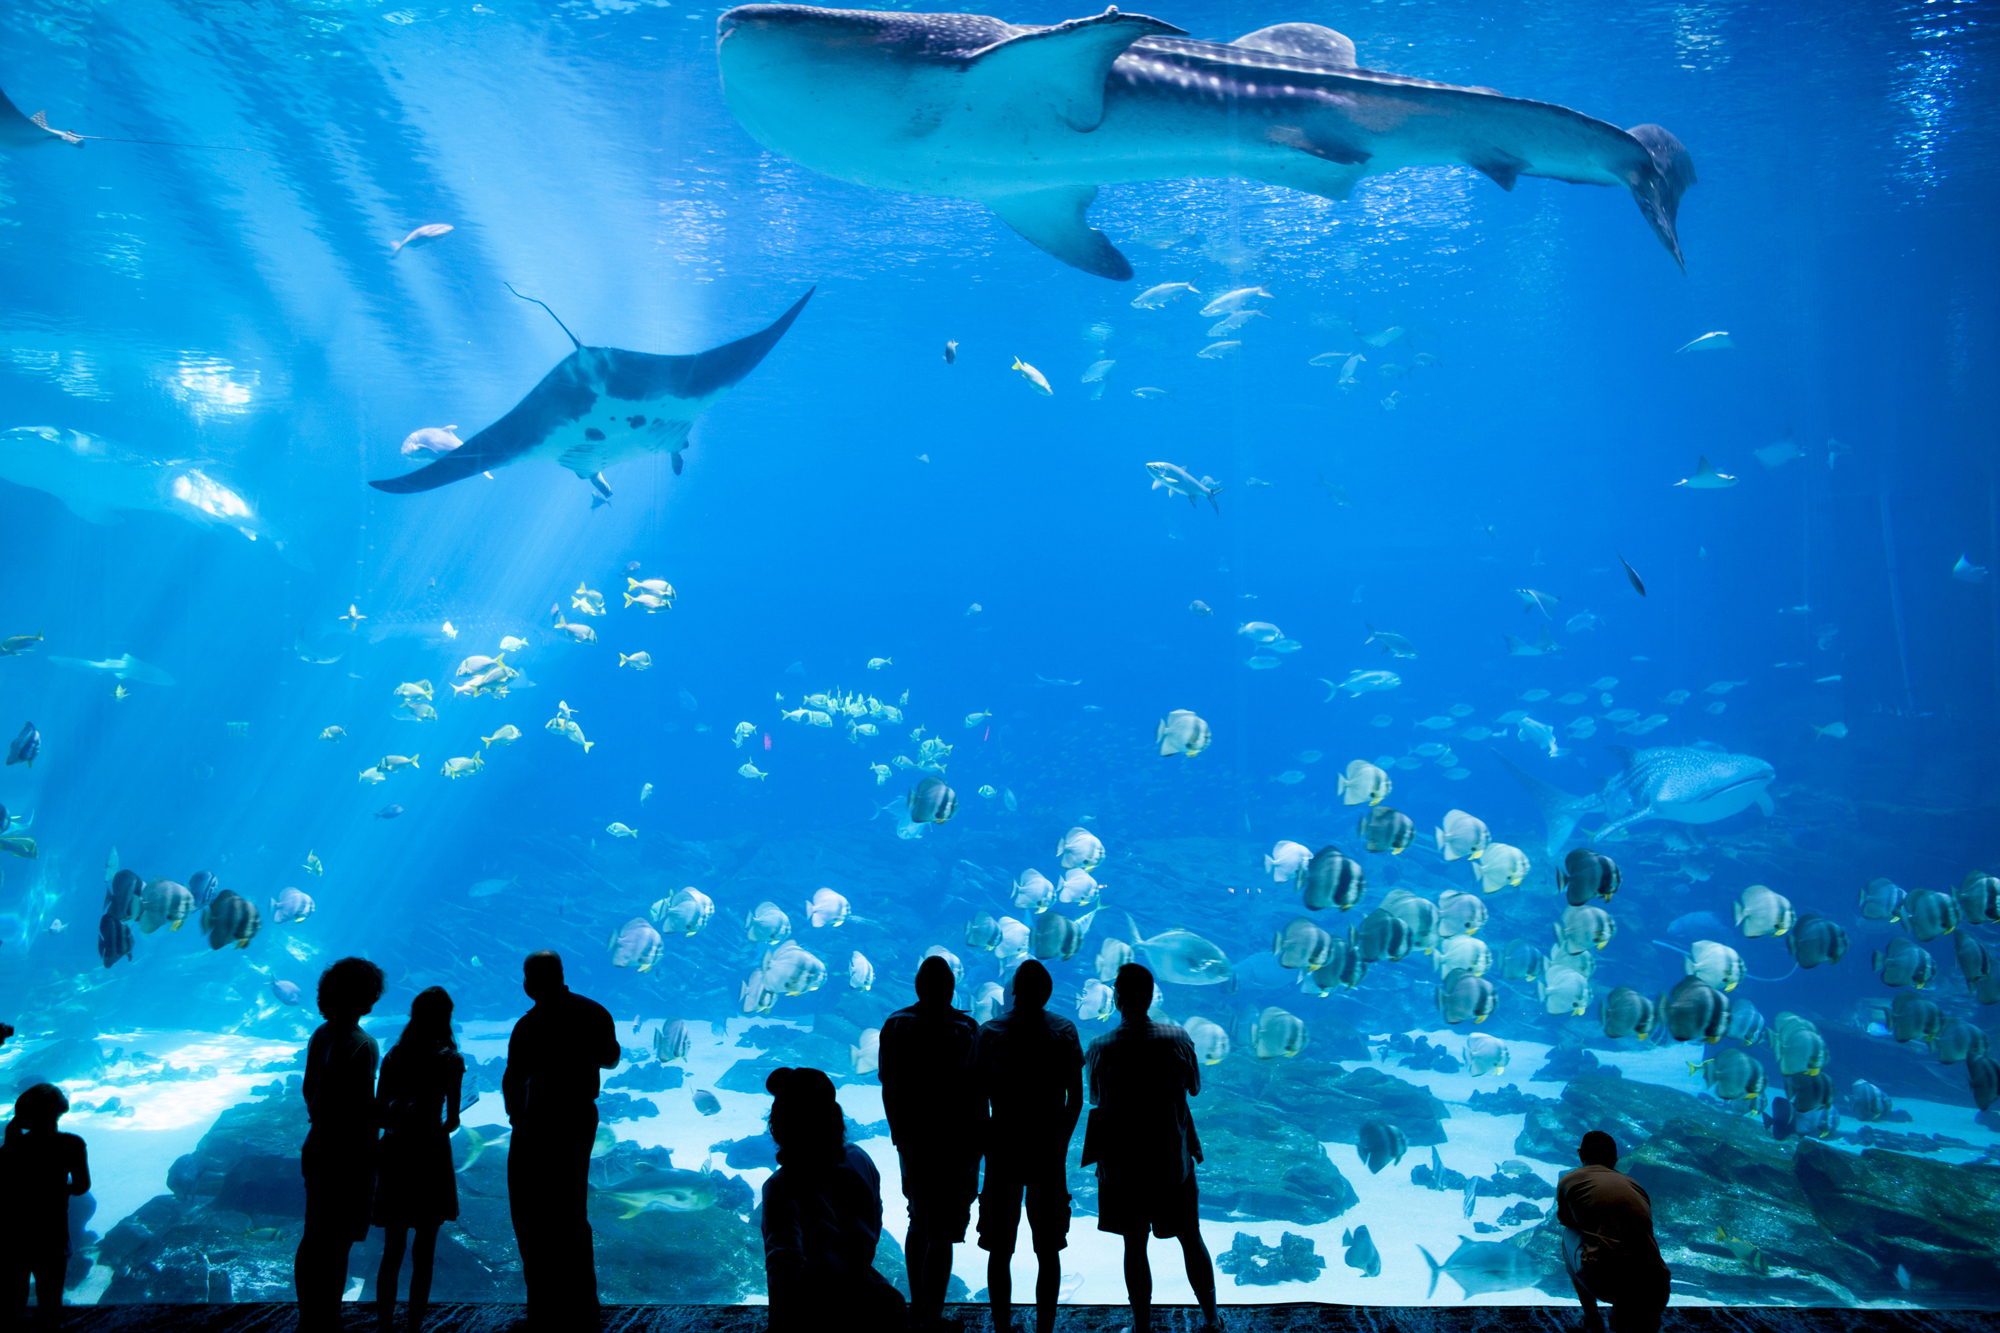 The Georgia Aquarium in Atlanta